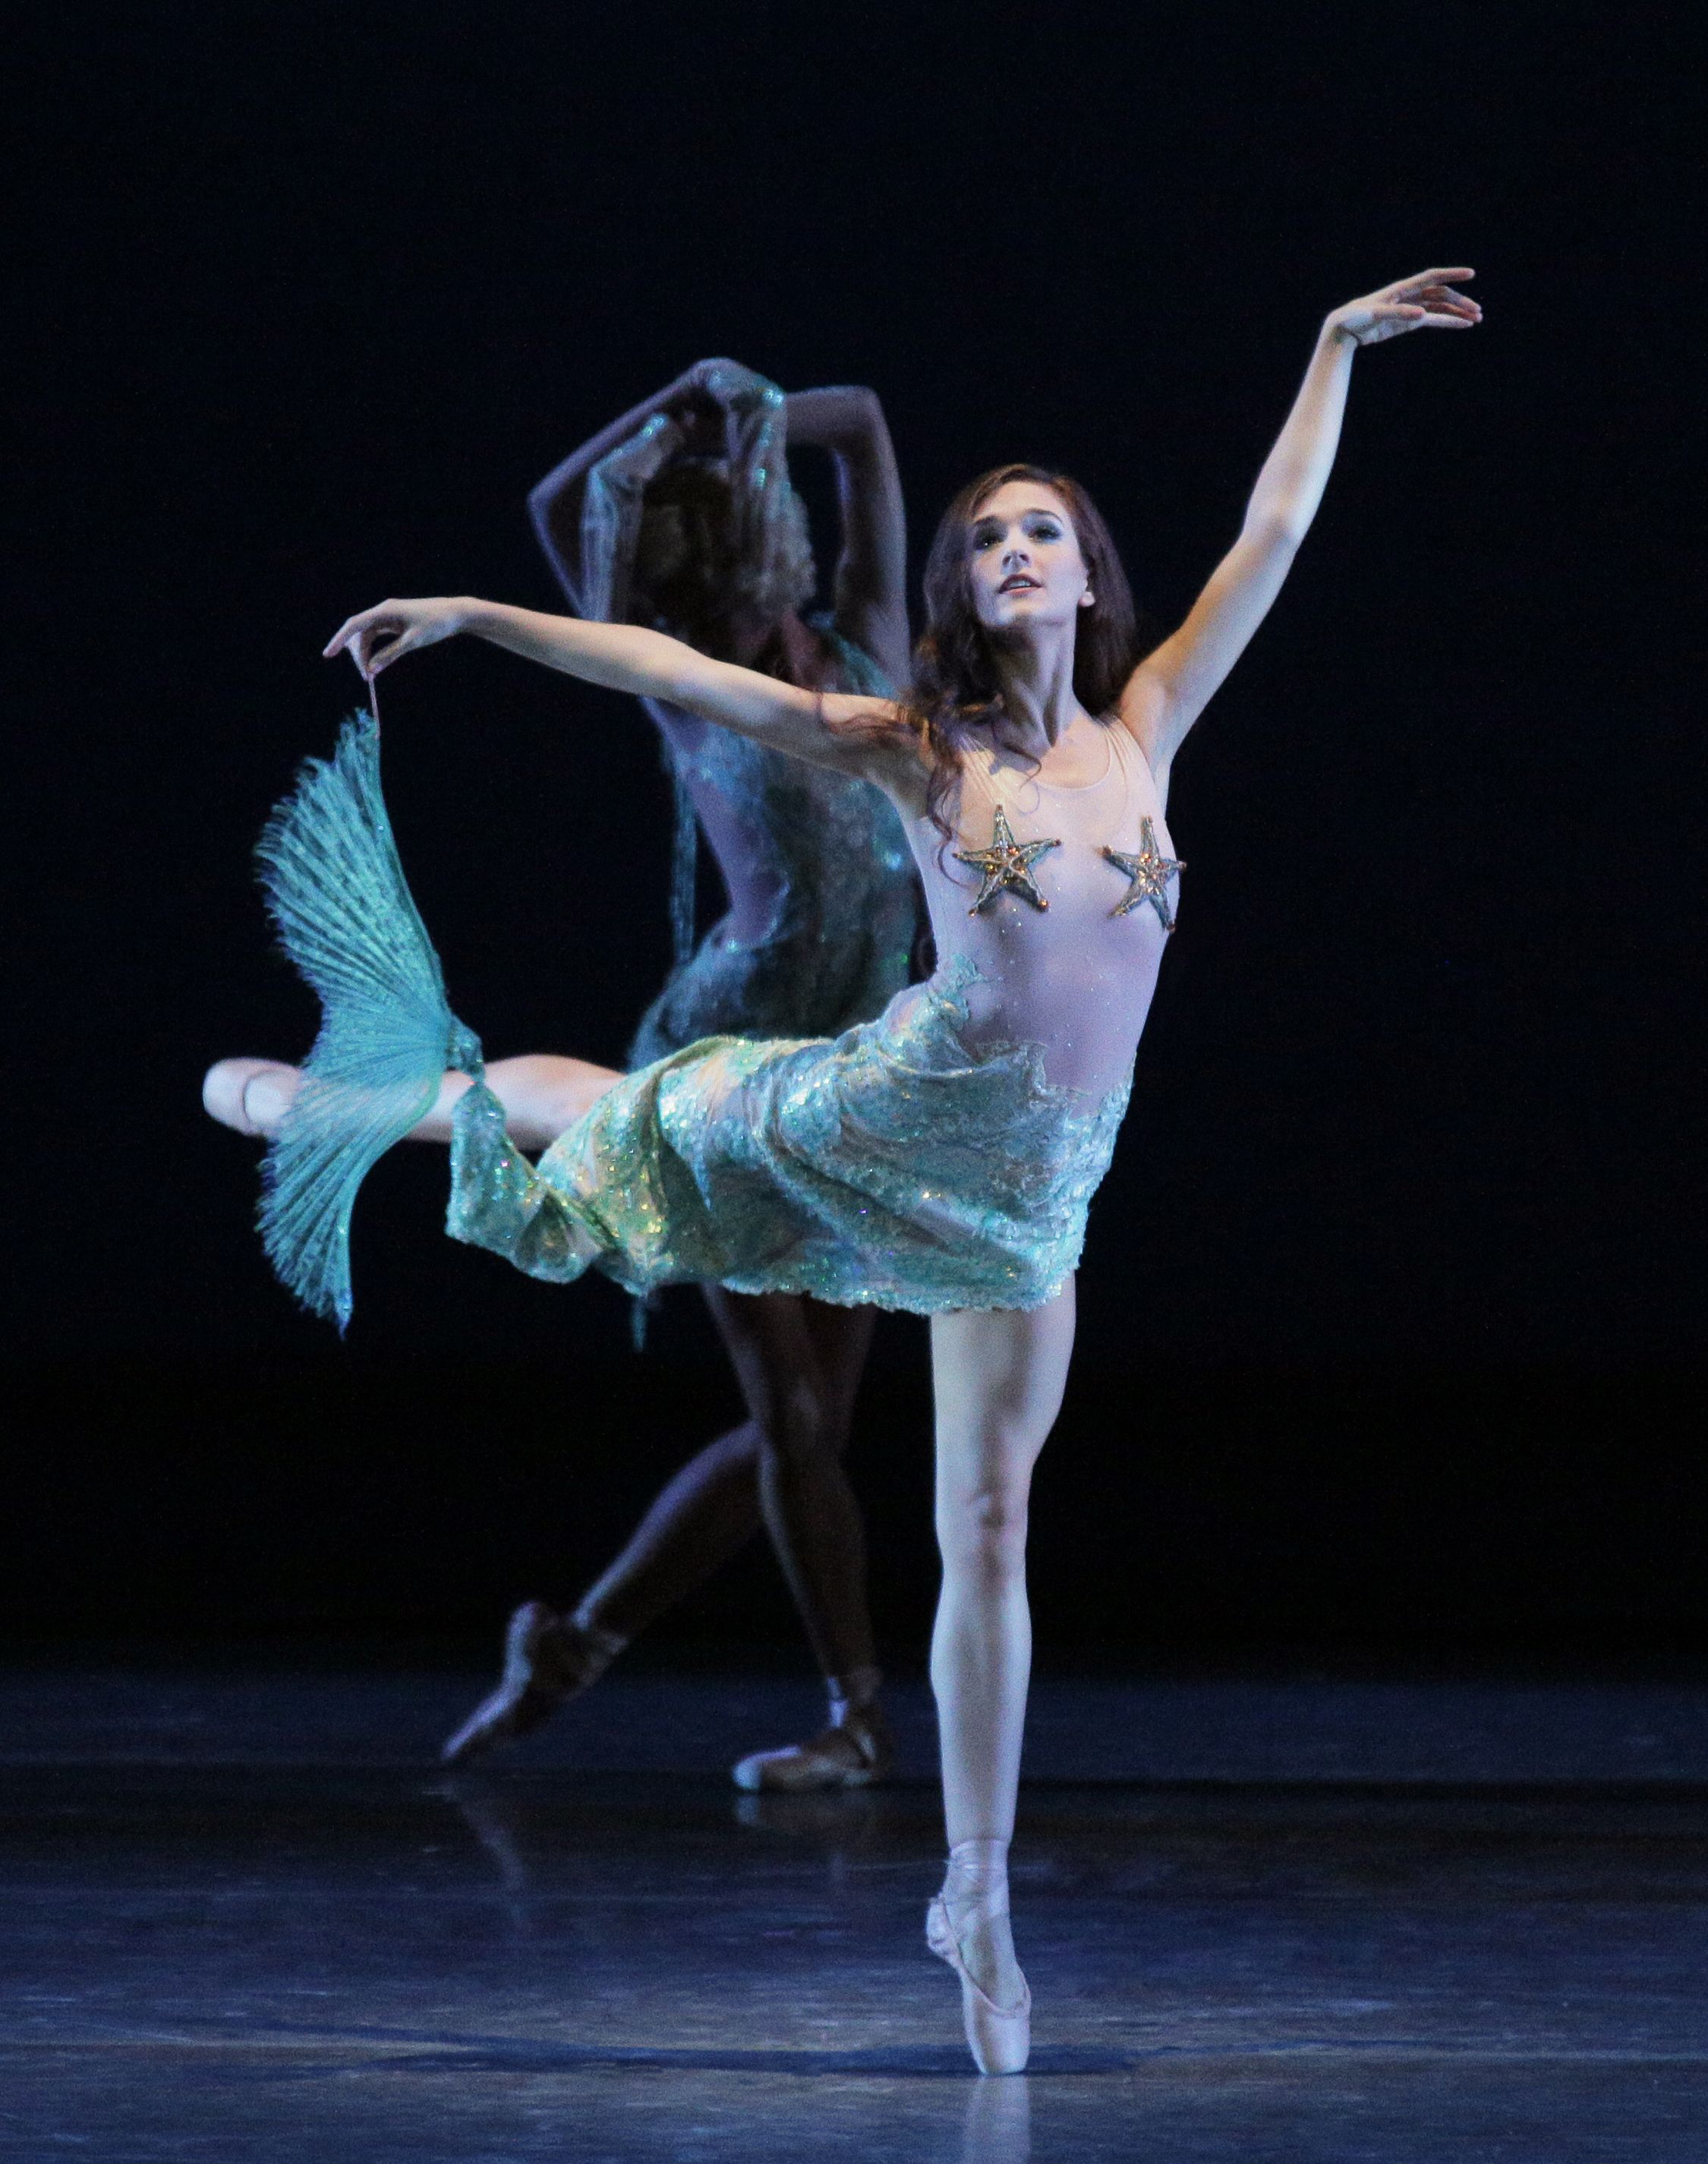 New York City Ballet Just For Fun Program City Ballet Mermaid Dancing Ballet Blog